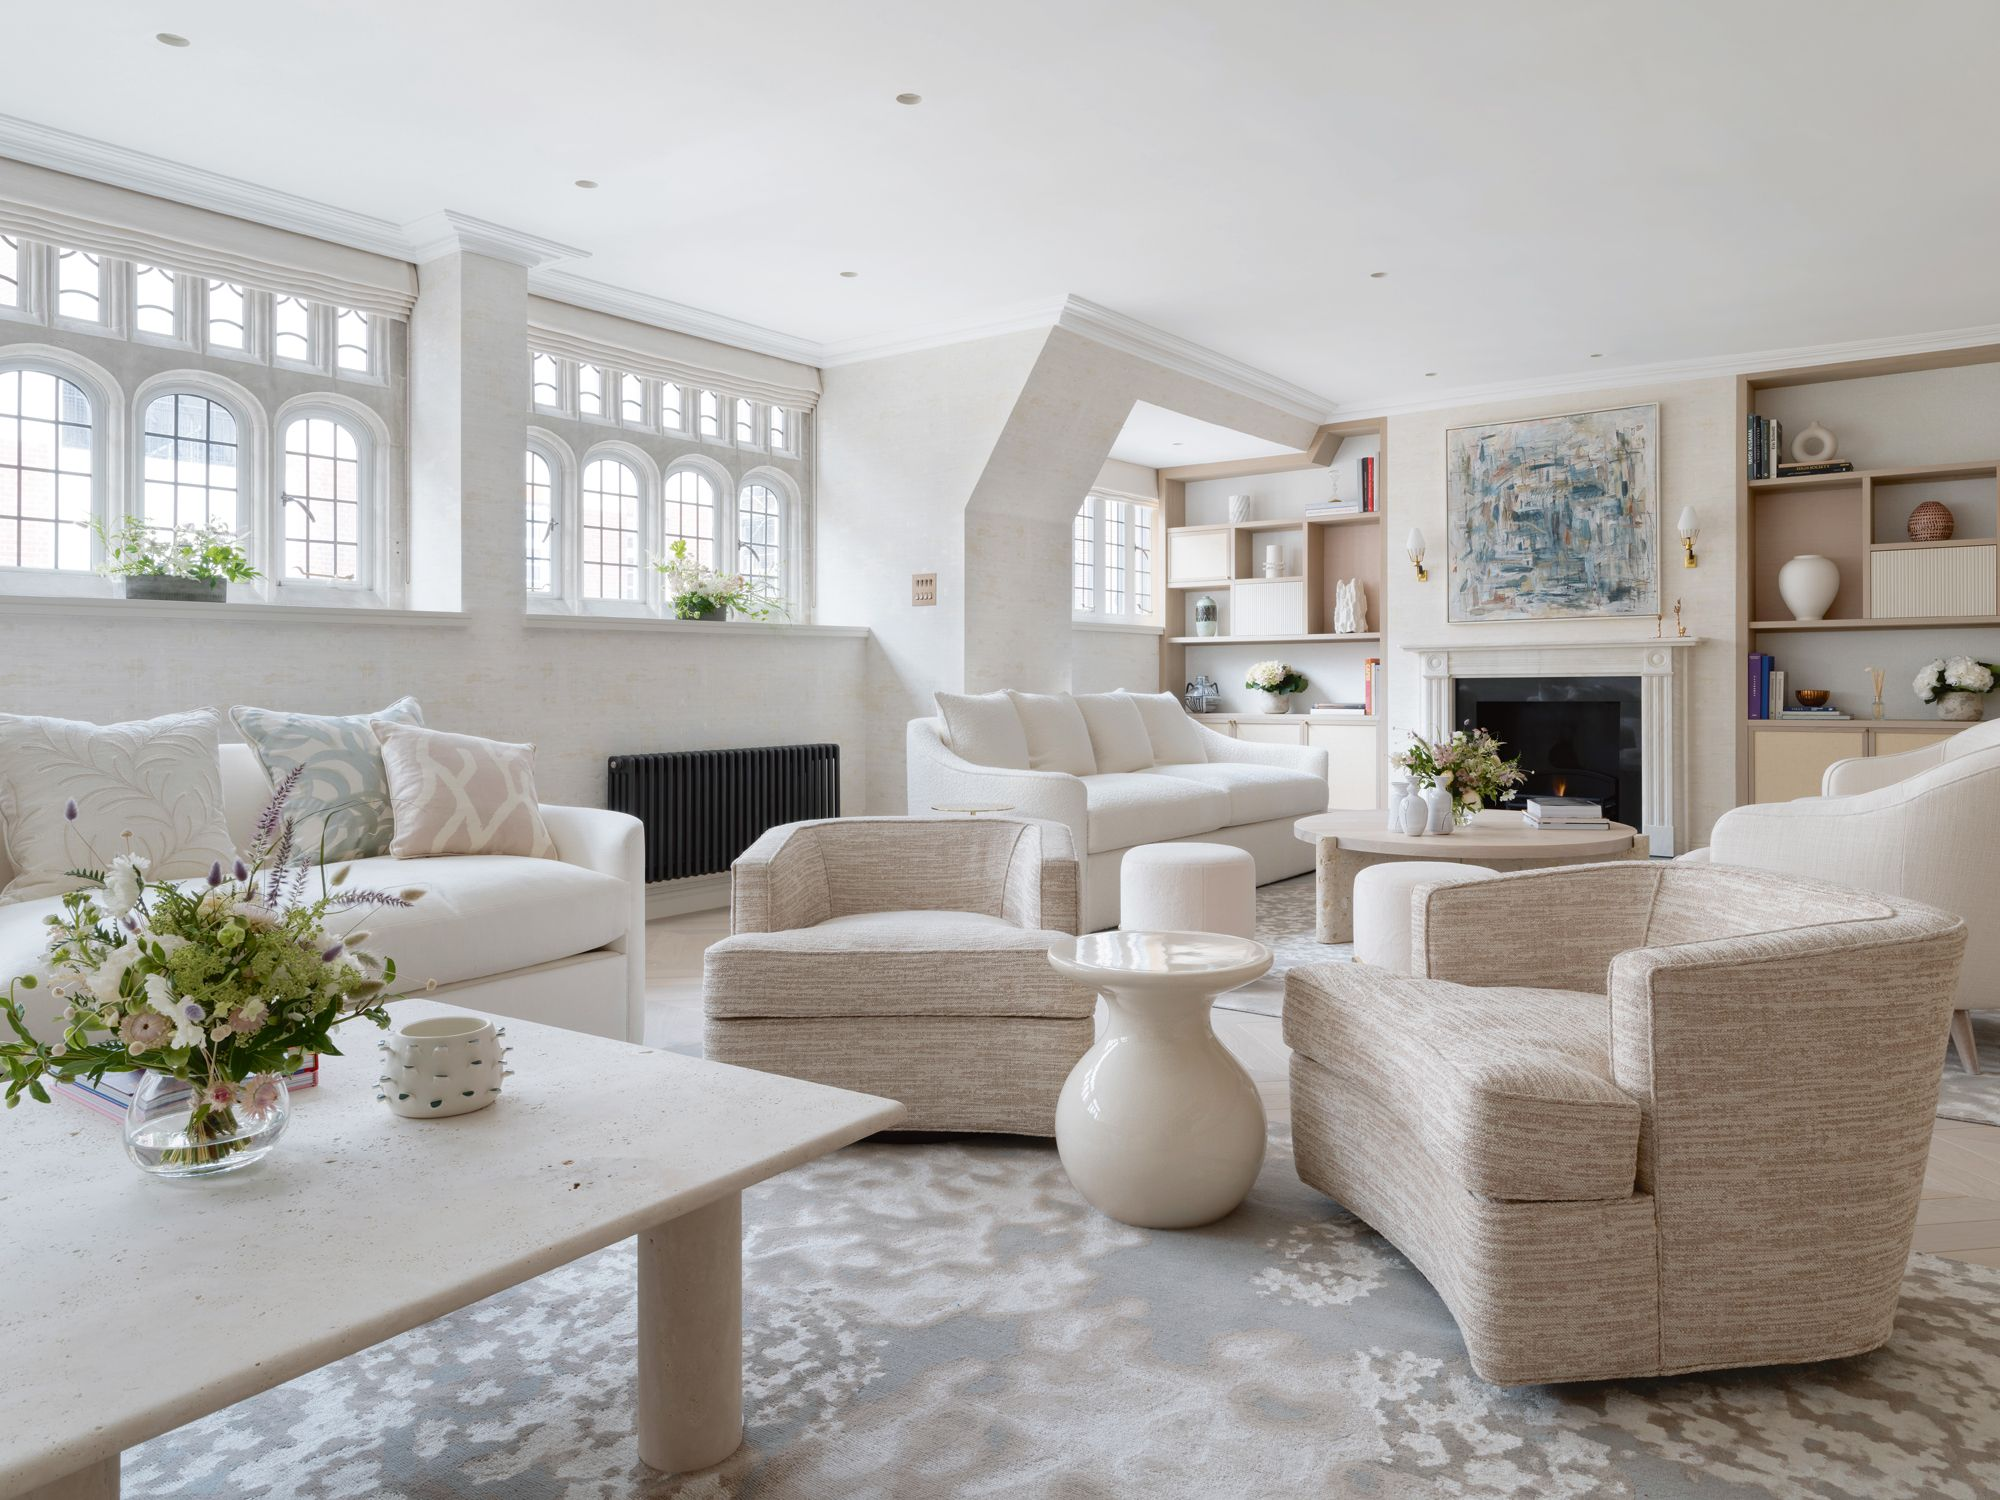 Beige, cream and off-white tones contribute to the lofty look of the living room